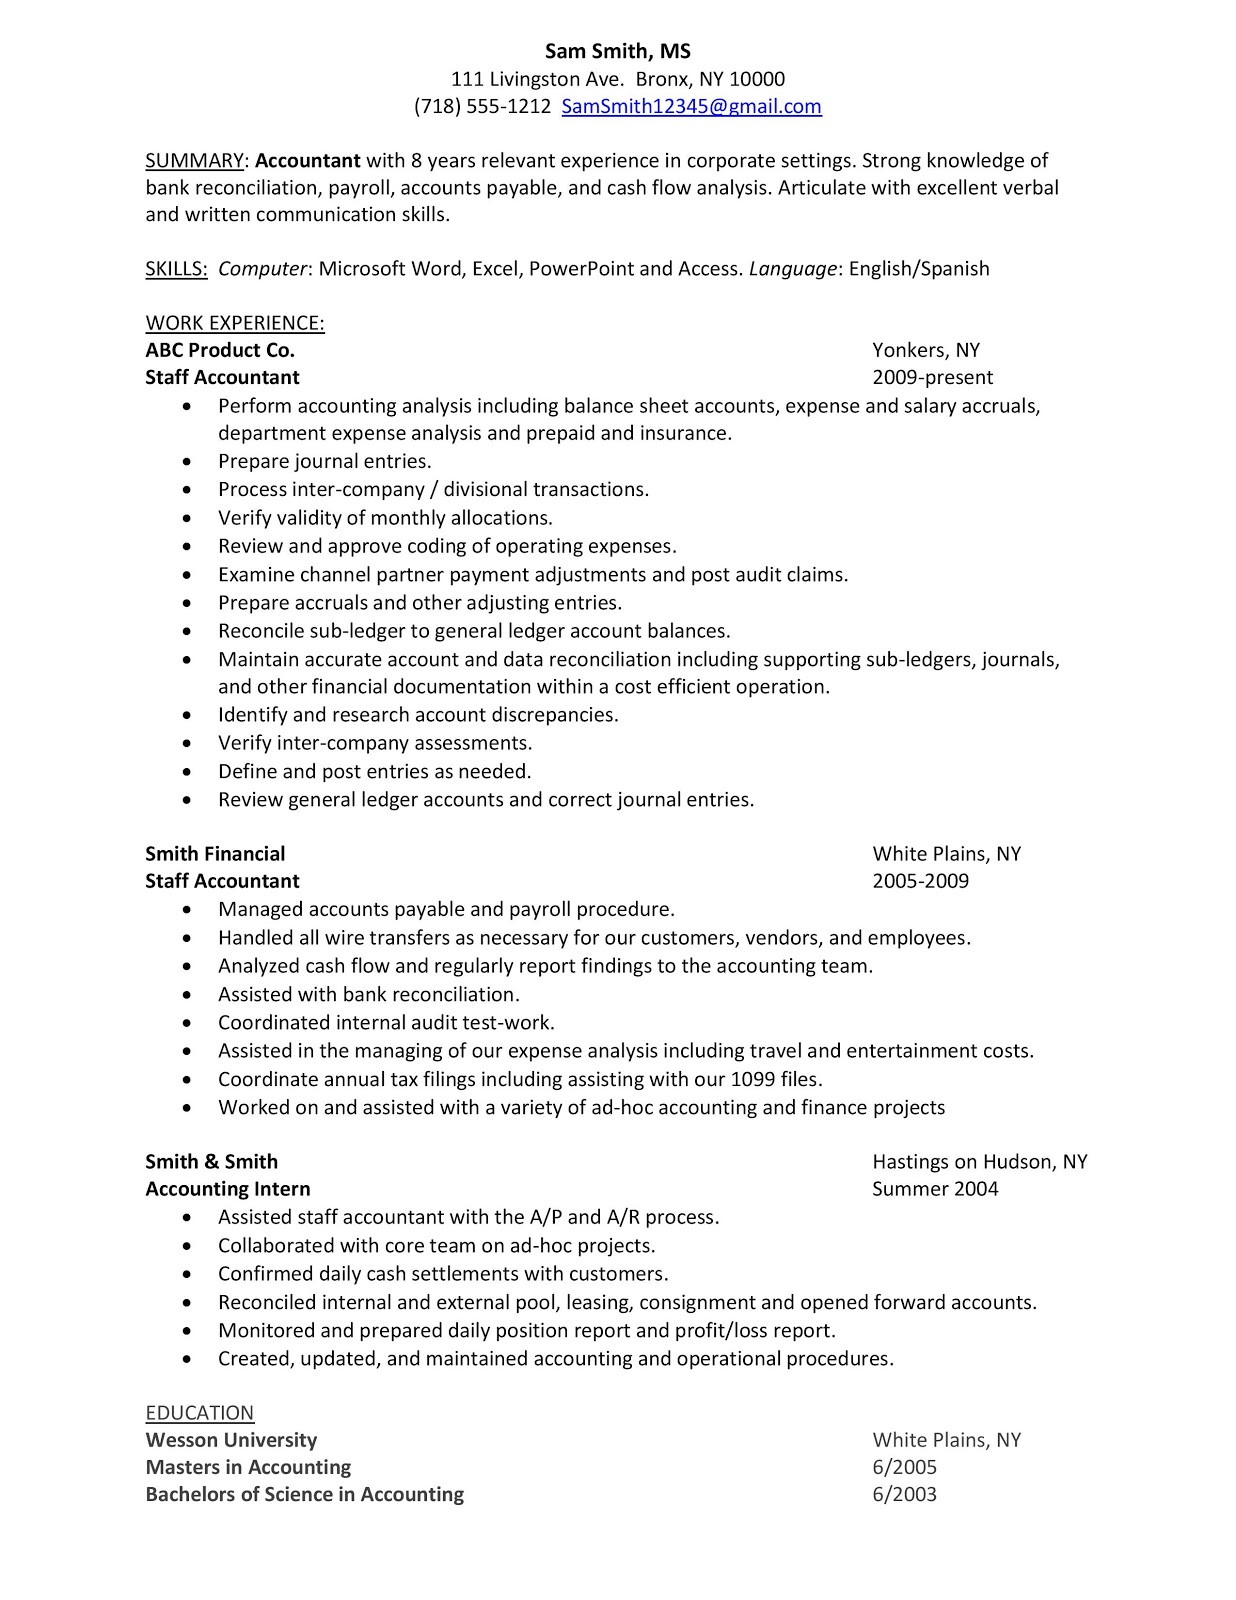 accounting resume models resume templates professional cv accounting resume models resume templates professional cv format